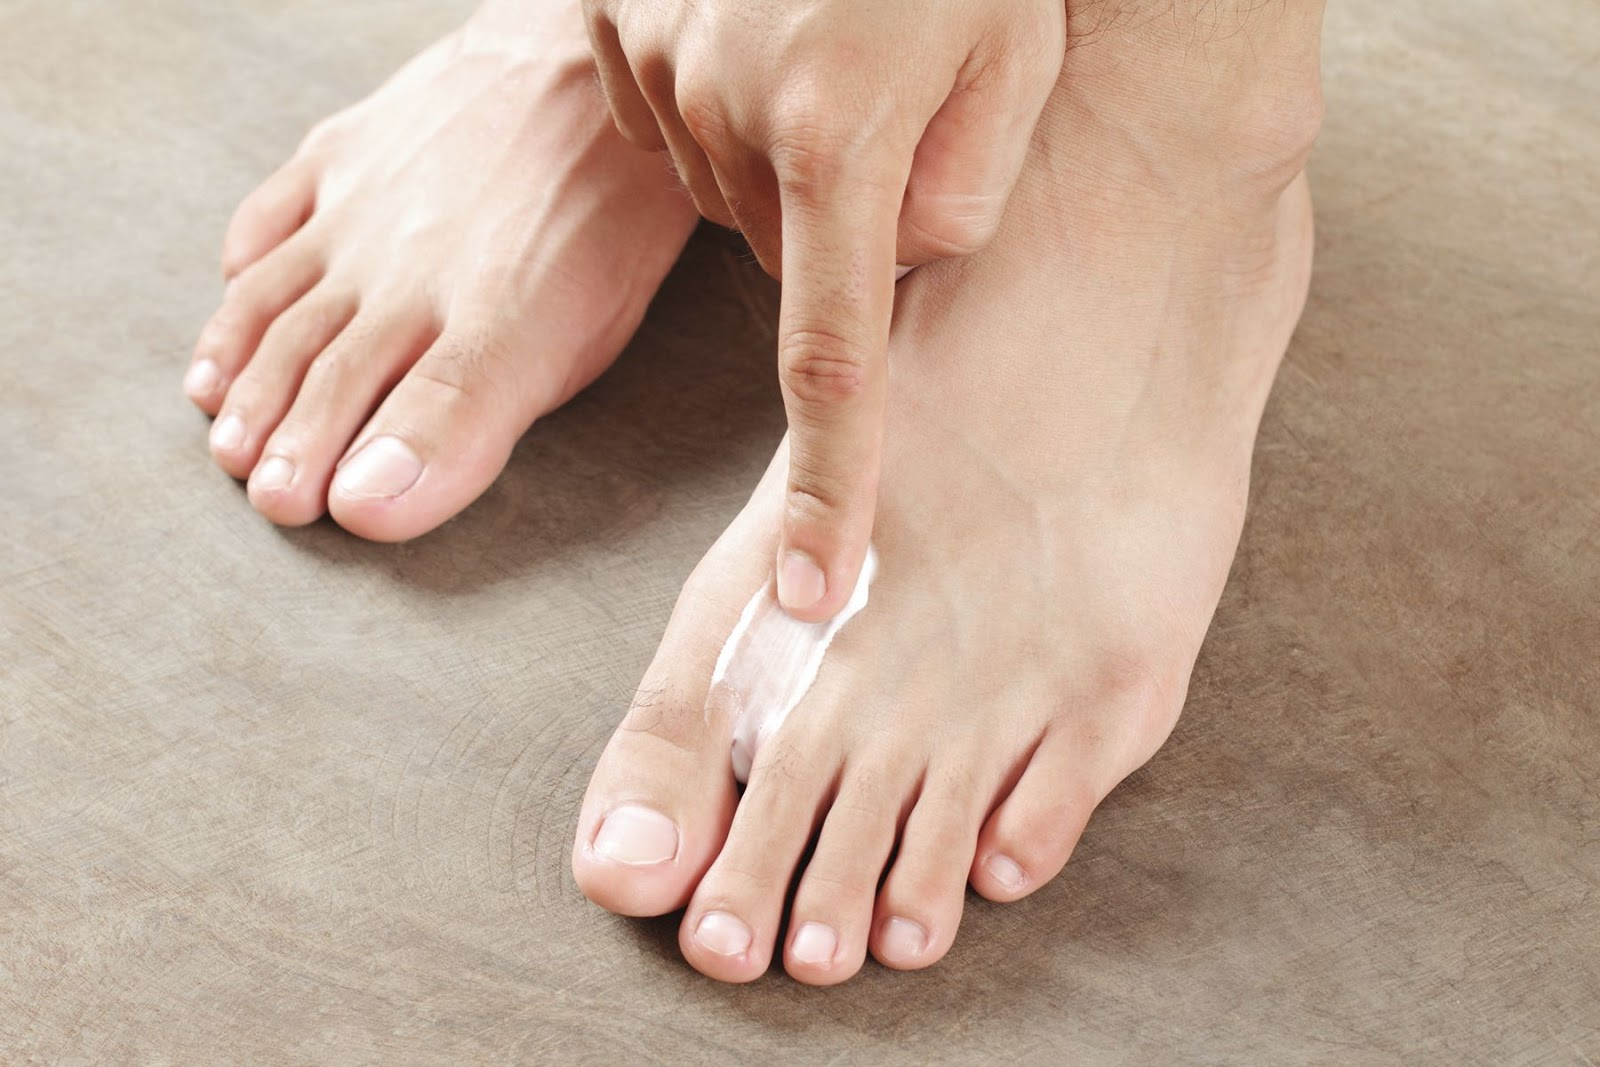 Cornstarch-and-water-to-treat-foot-infection